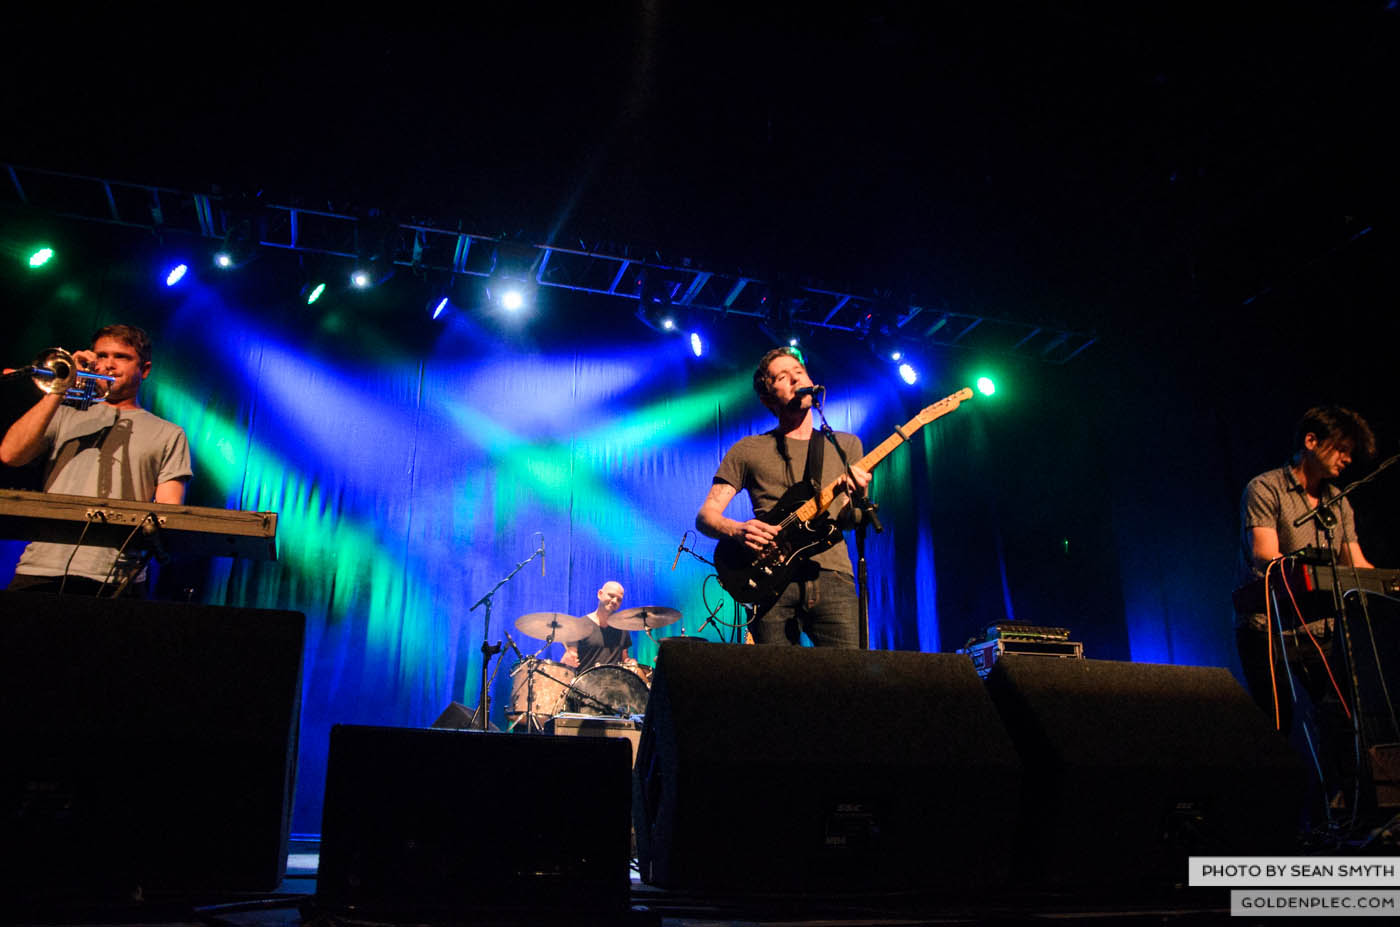 the-antlers-at-the-olympia-theatre-by-sean-smyth-30-10-14-4-of-22